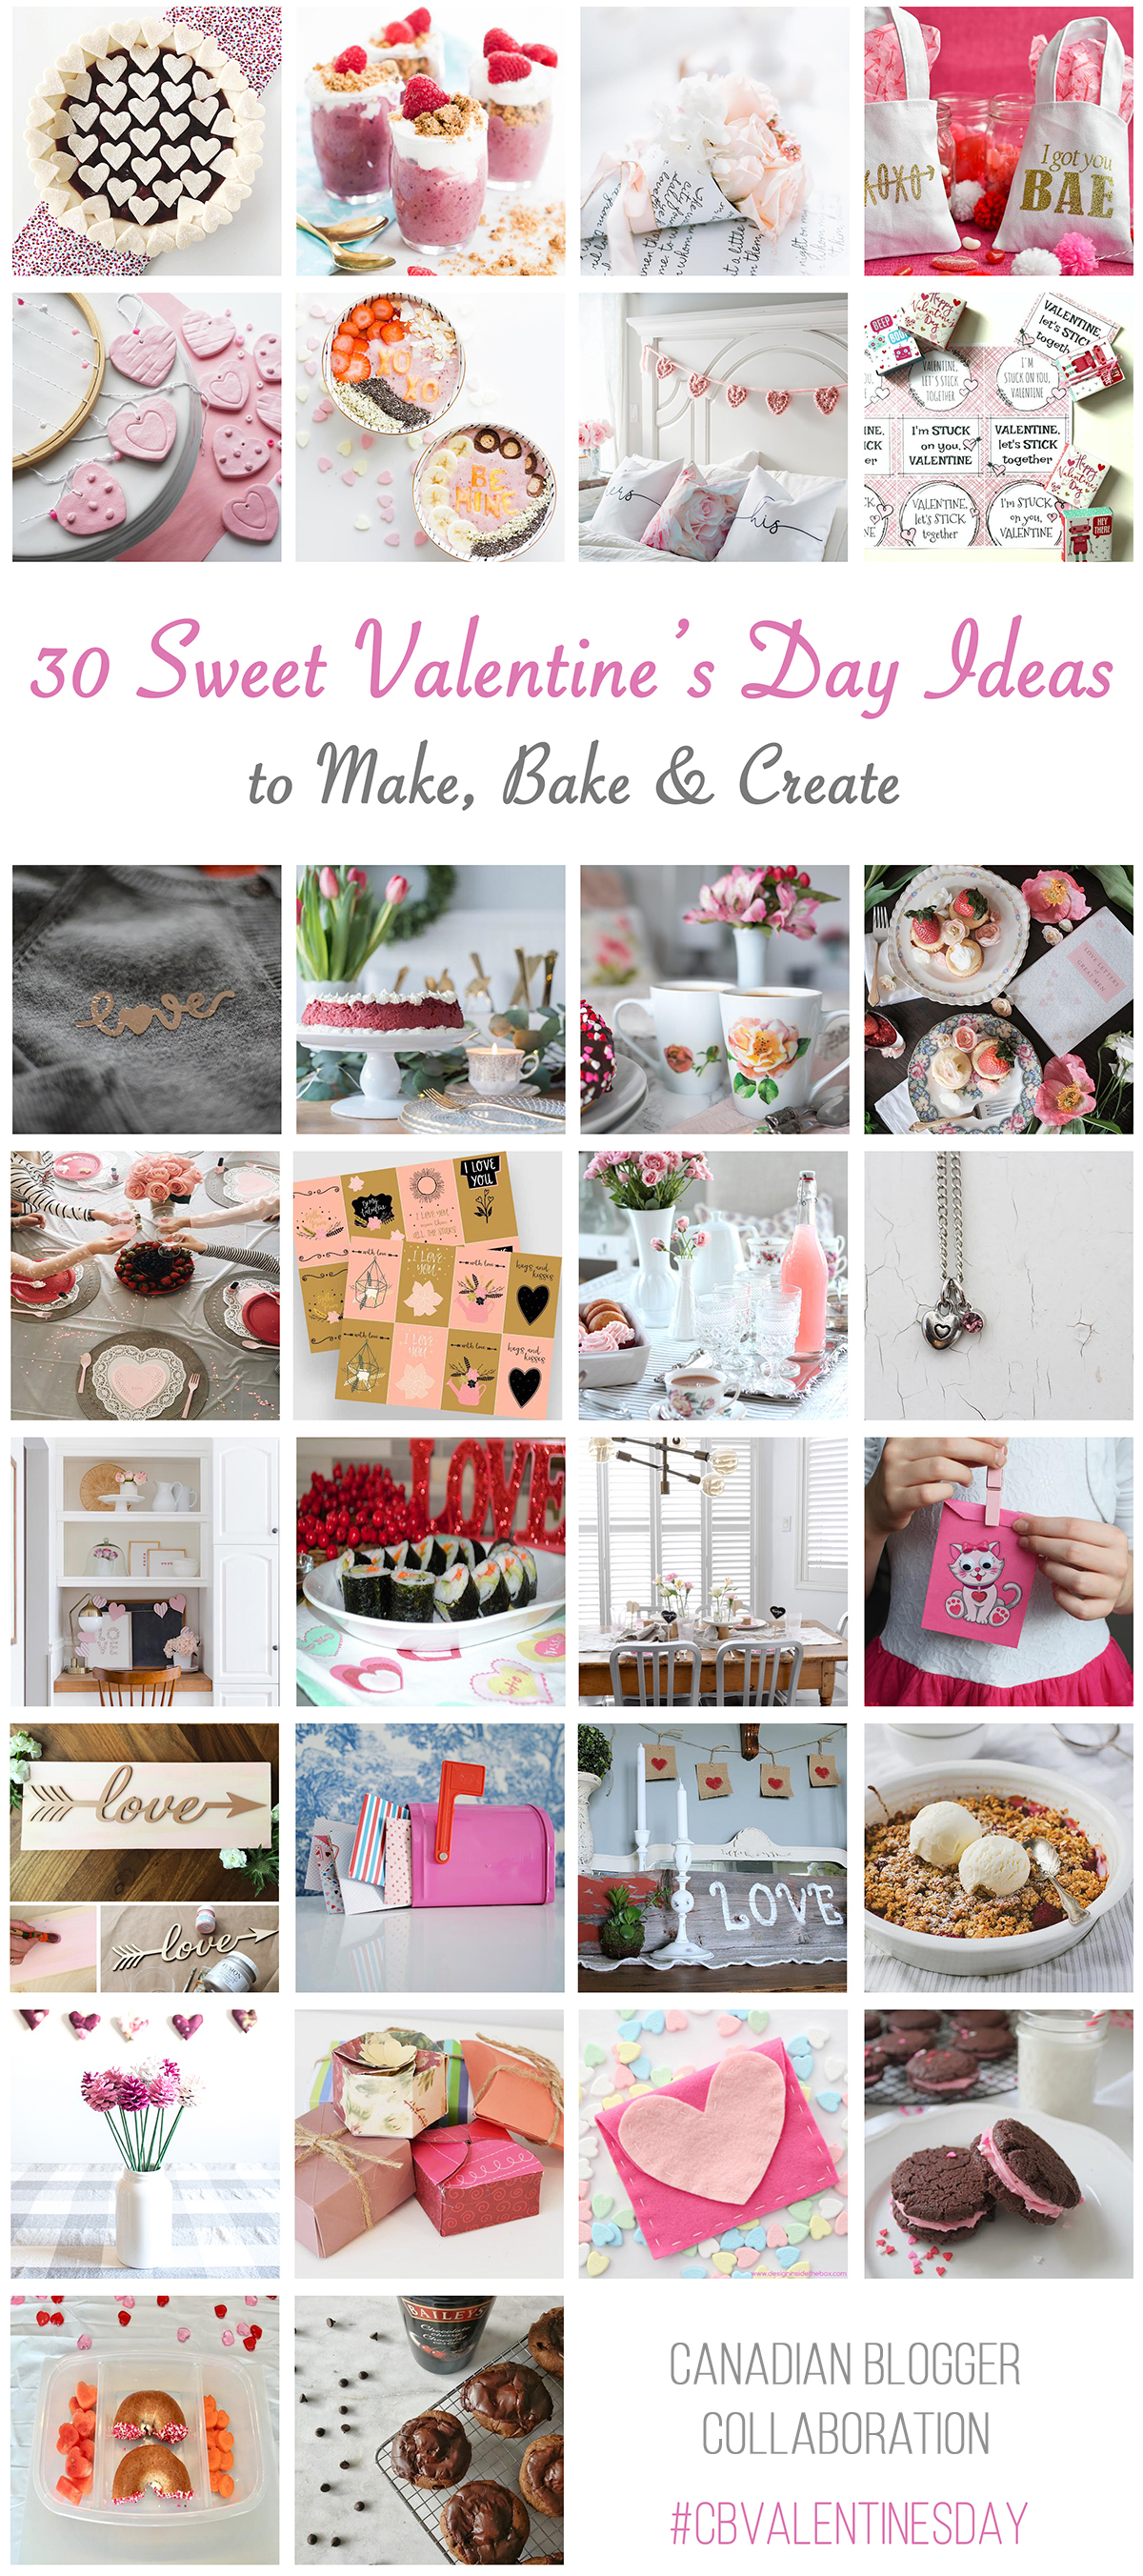 30 Sweet Valentine's Day Ideas to Make, Bake & Craft